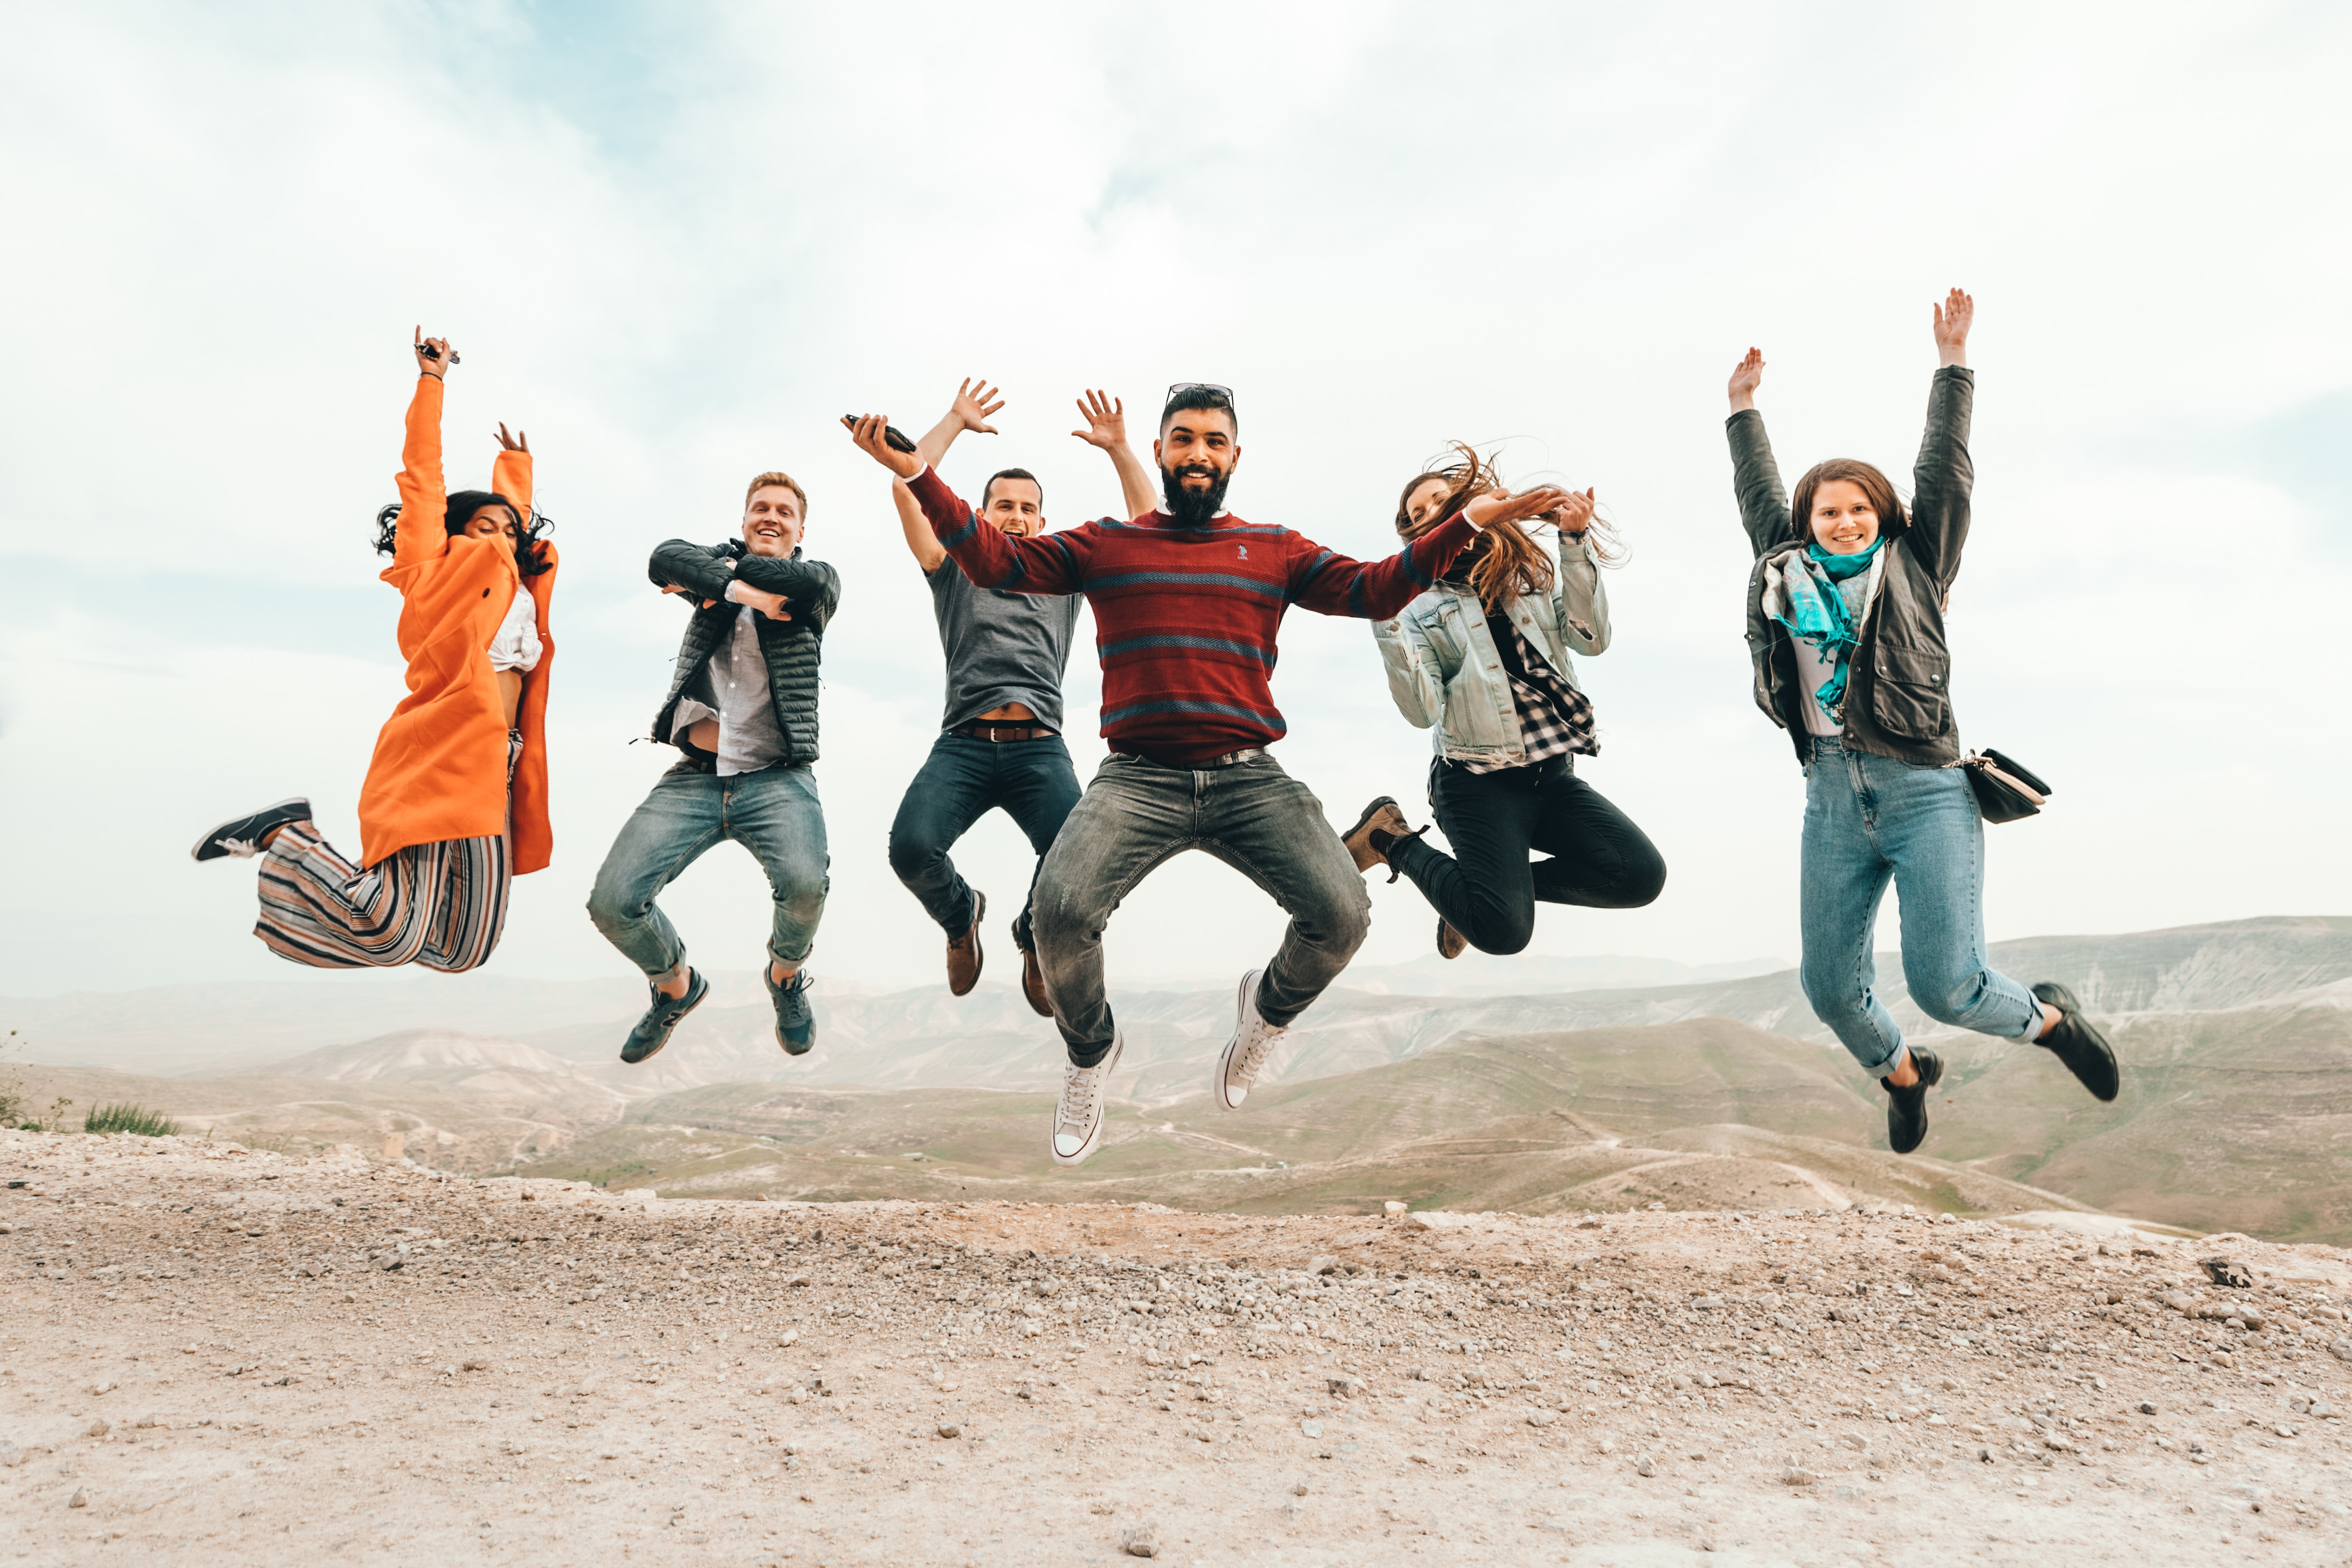 Group of people jumping in the air